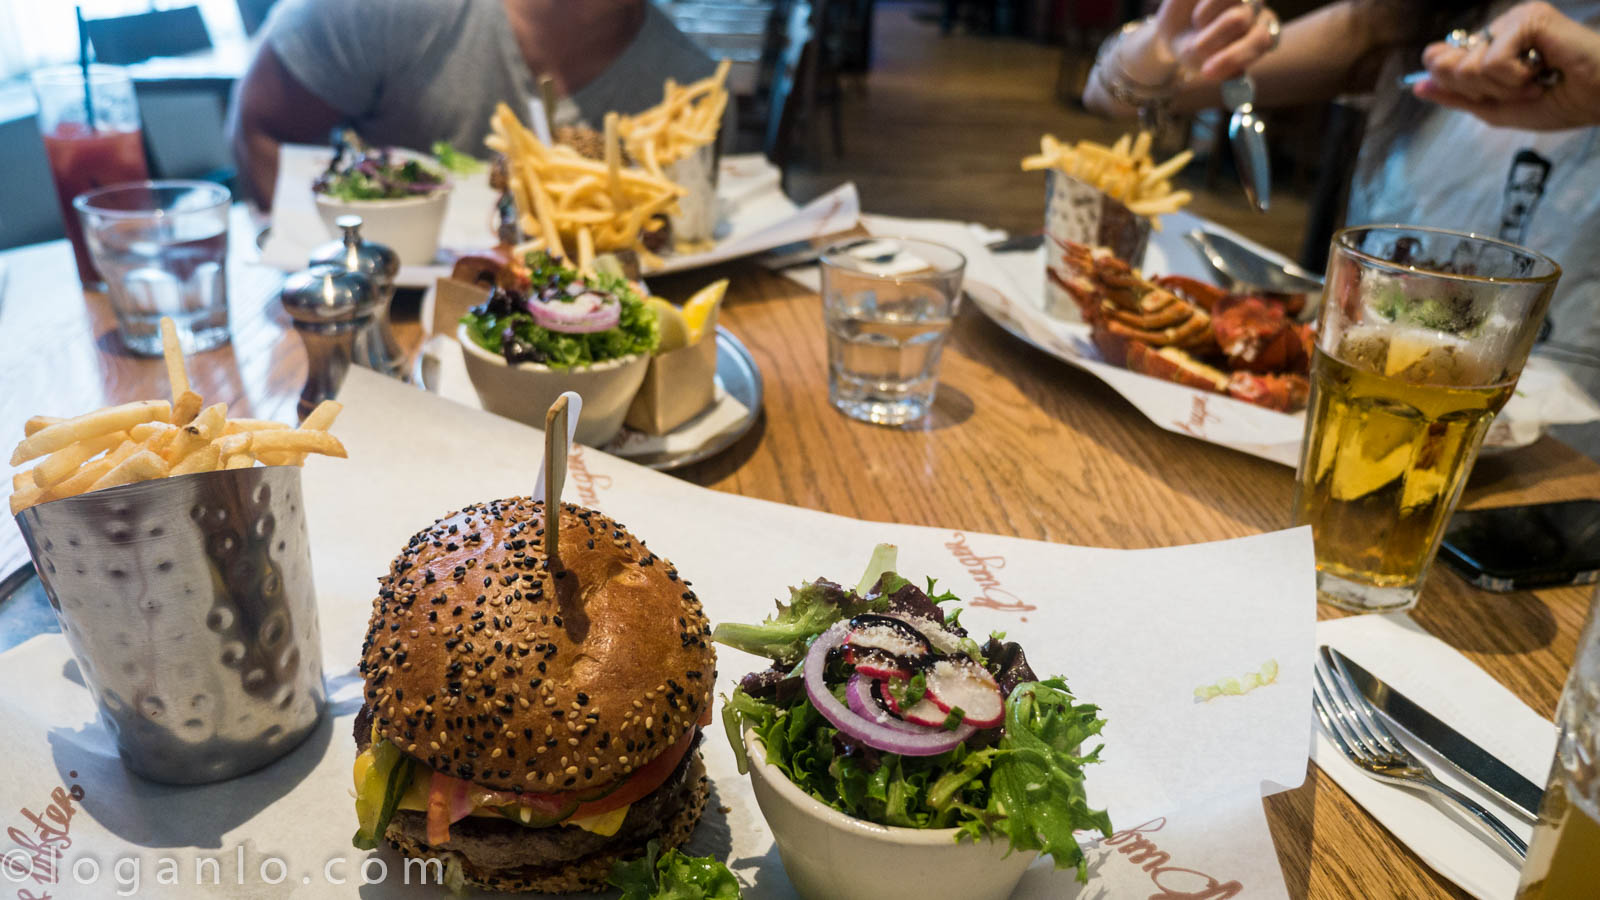 Burgers and Lobsters at Burger and Lobster